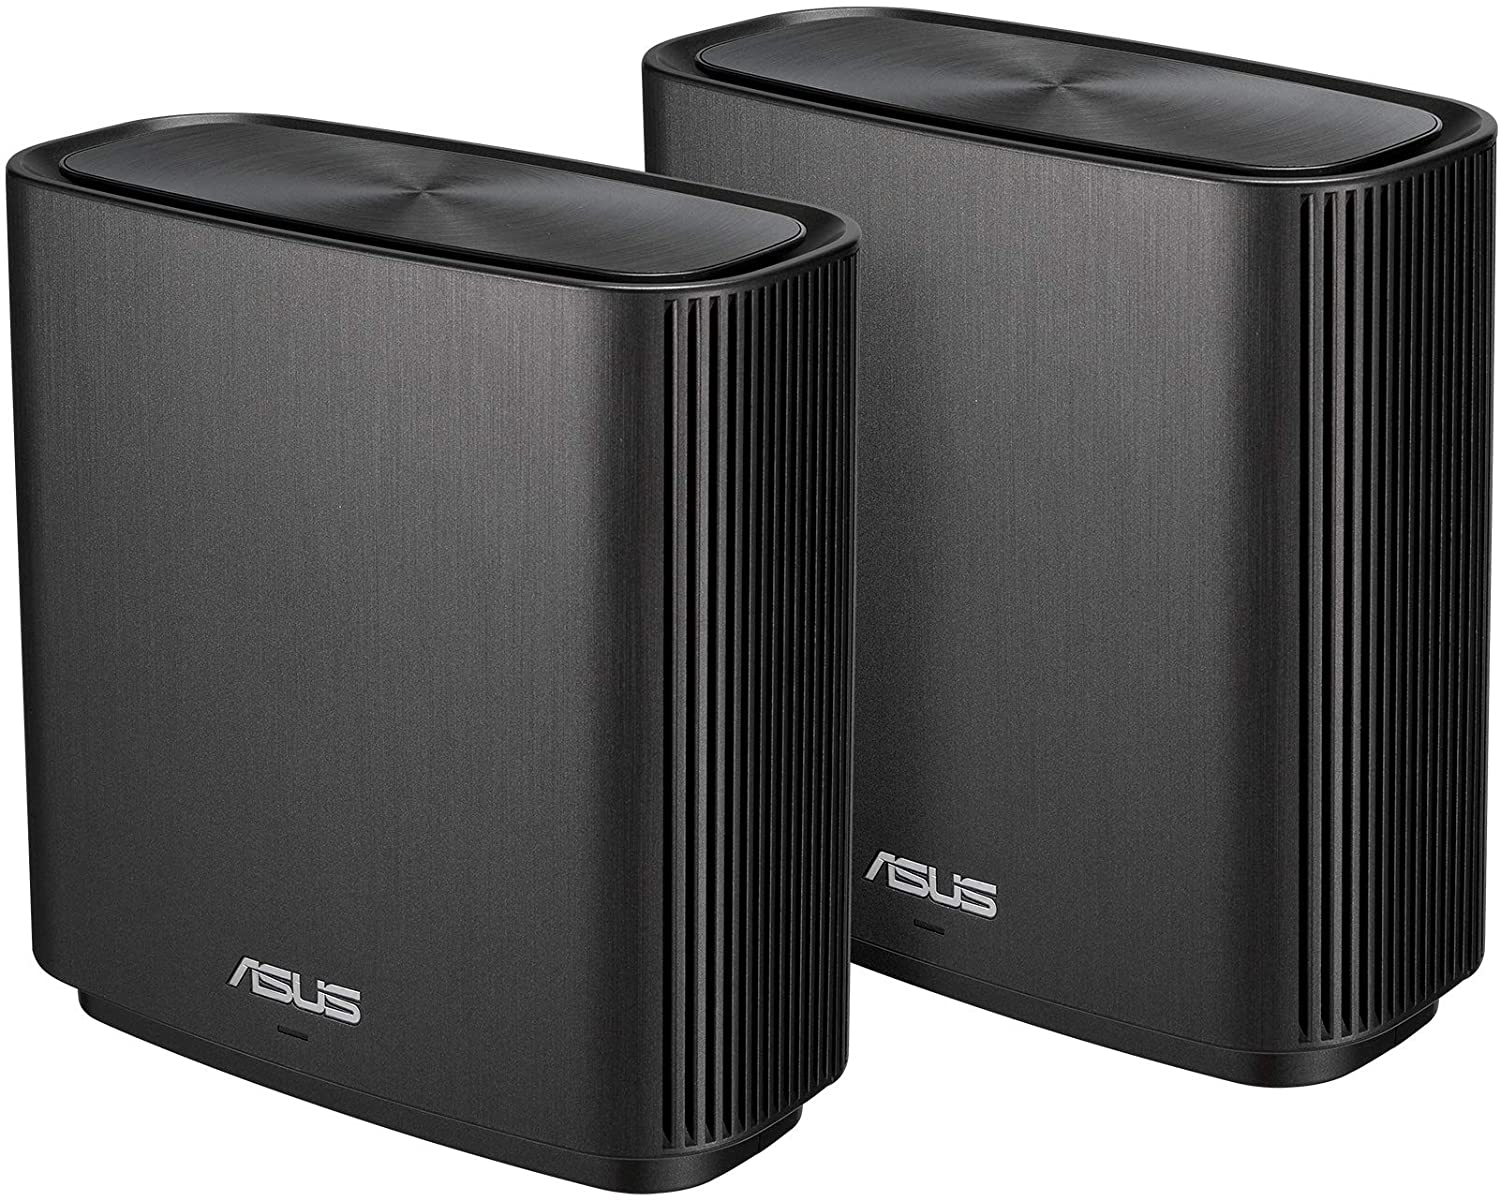 ASUS ZenWiFi AC Whole-Home Tri-Band Mesh System (CT8 2 Pack Charcoal) Coverage up to 5,400 sq.ft, AC3000, WiFi, Life-time Free Network Security and Parental Controls, 4X Gigabit Ports, 3 SSIDs